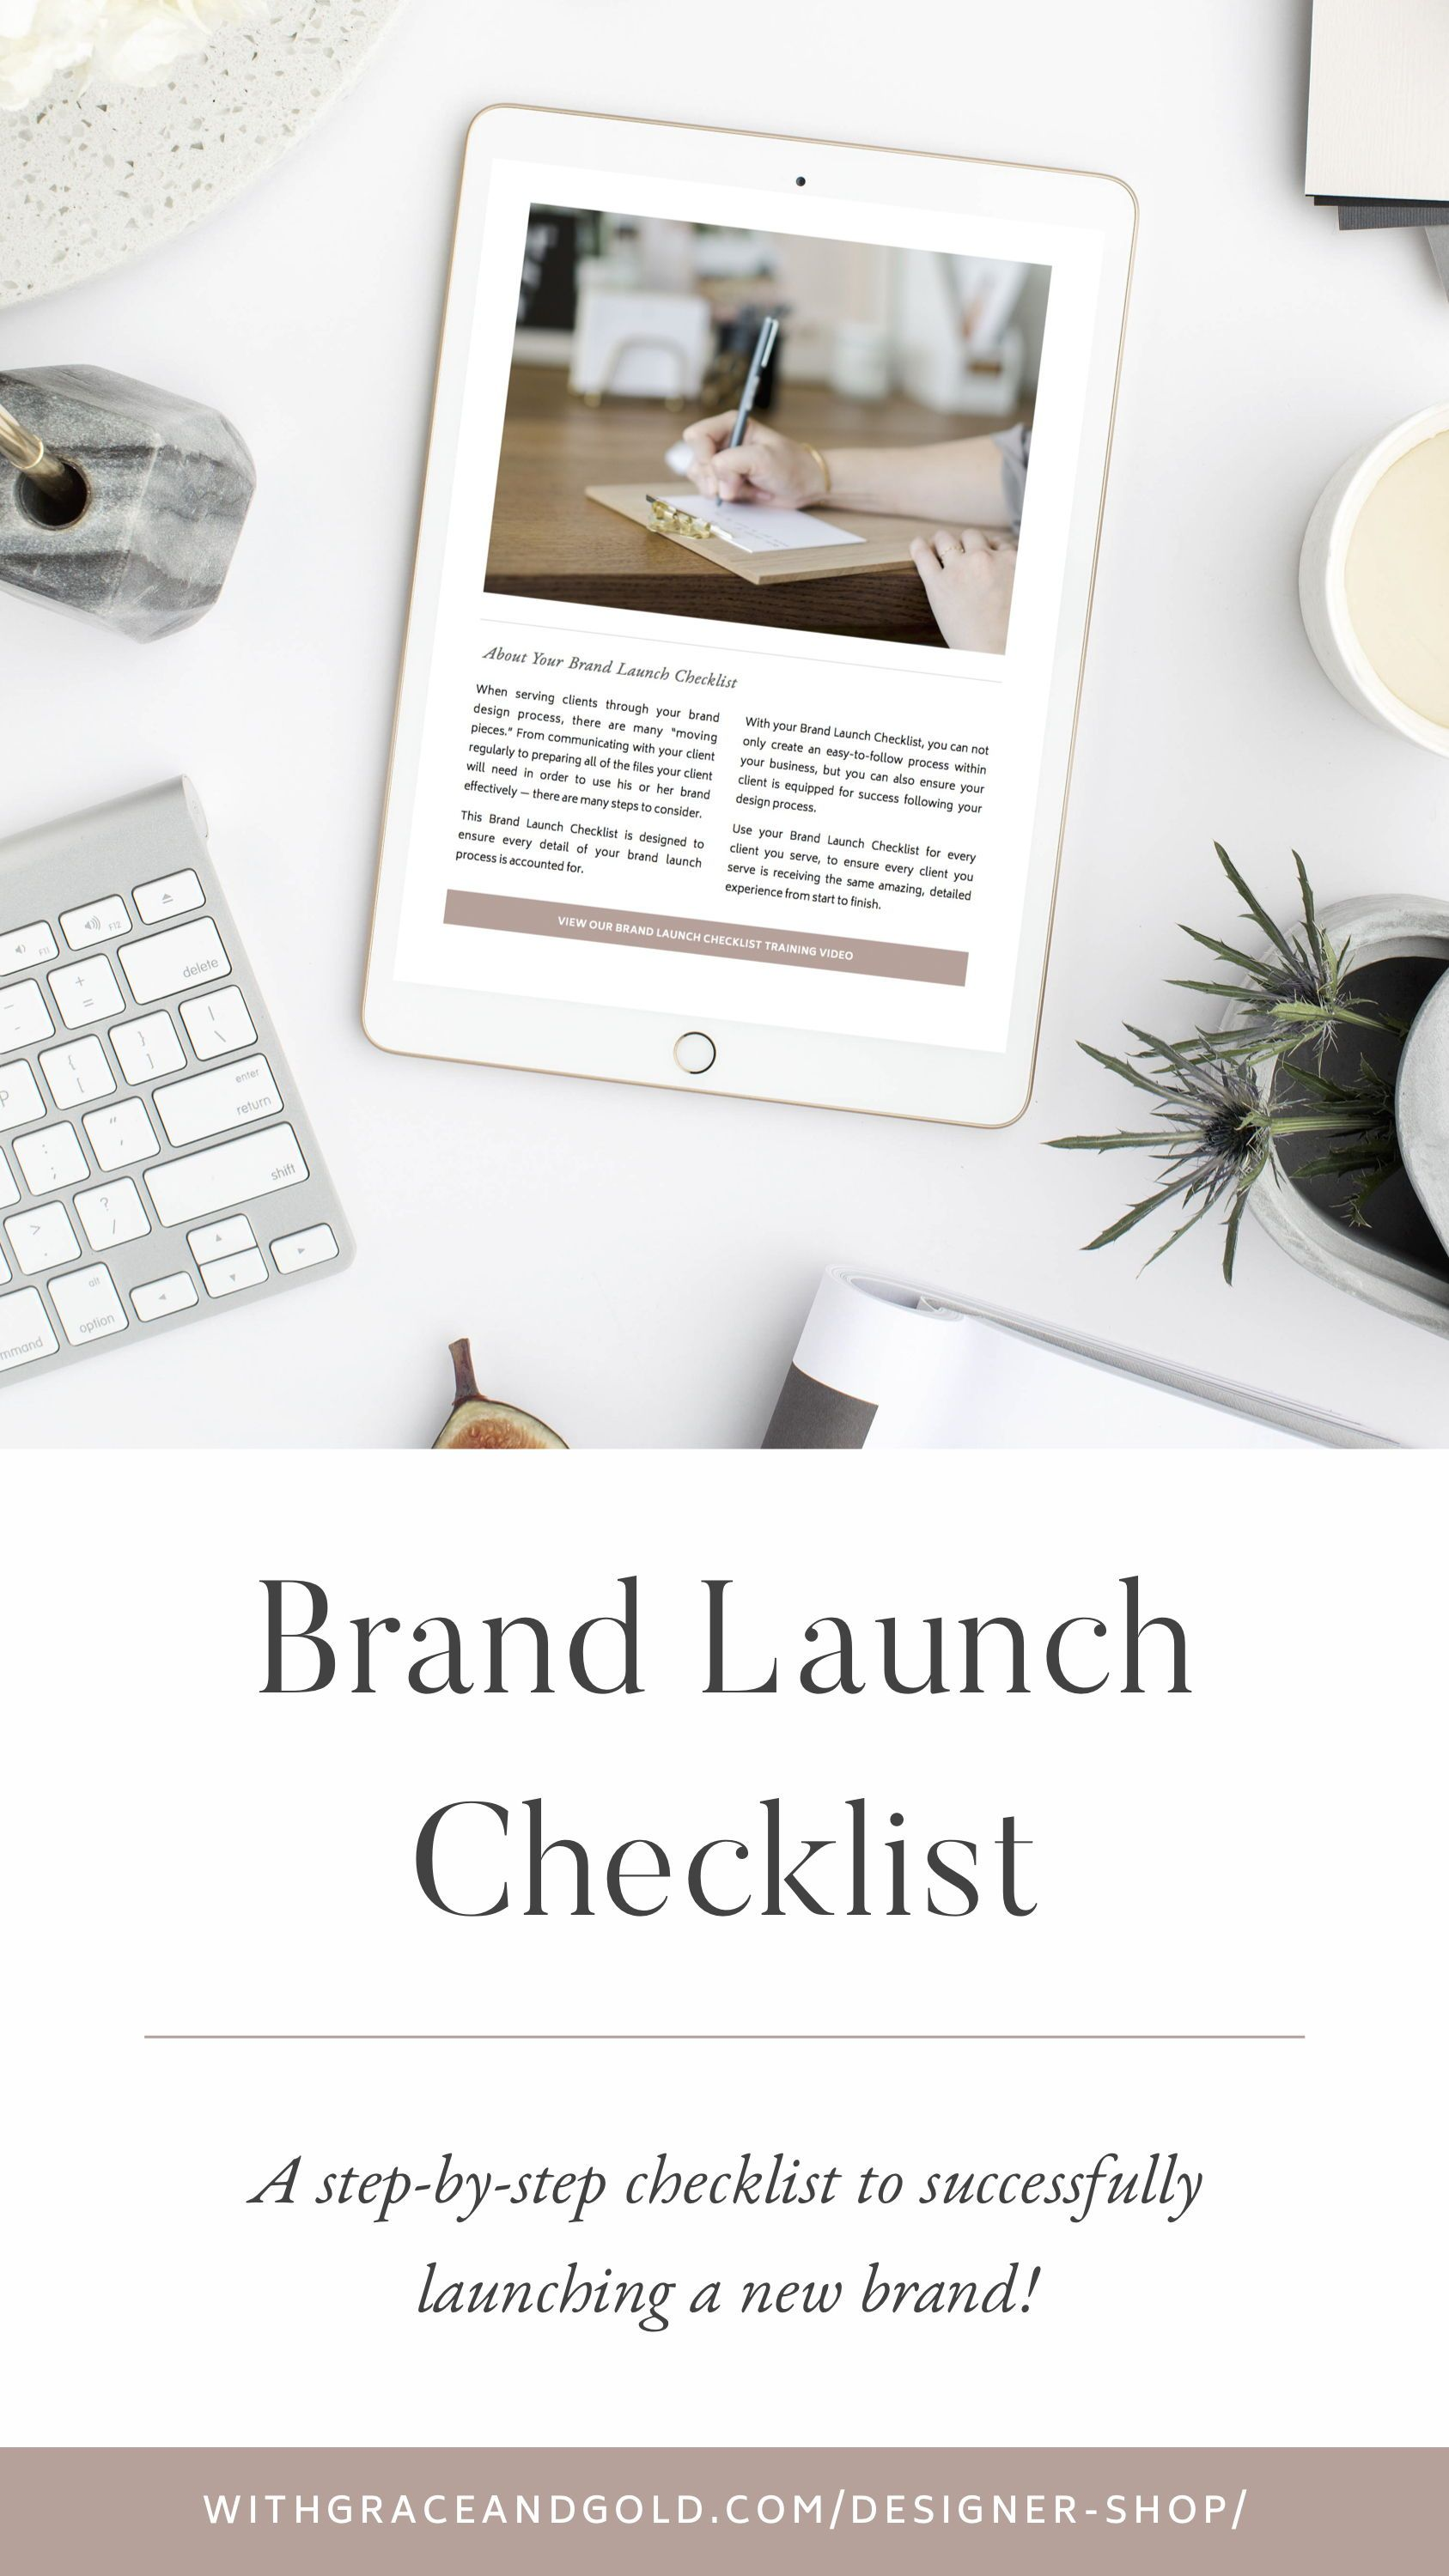 Brand Launch Checklist For Graphic Designers By With Grace And